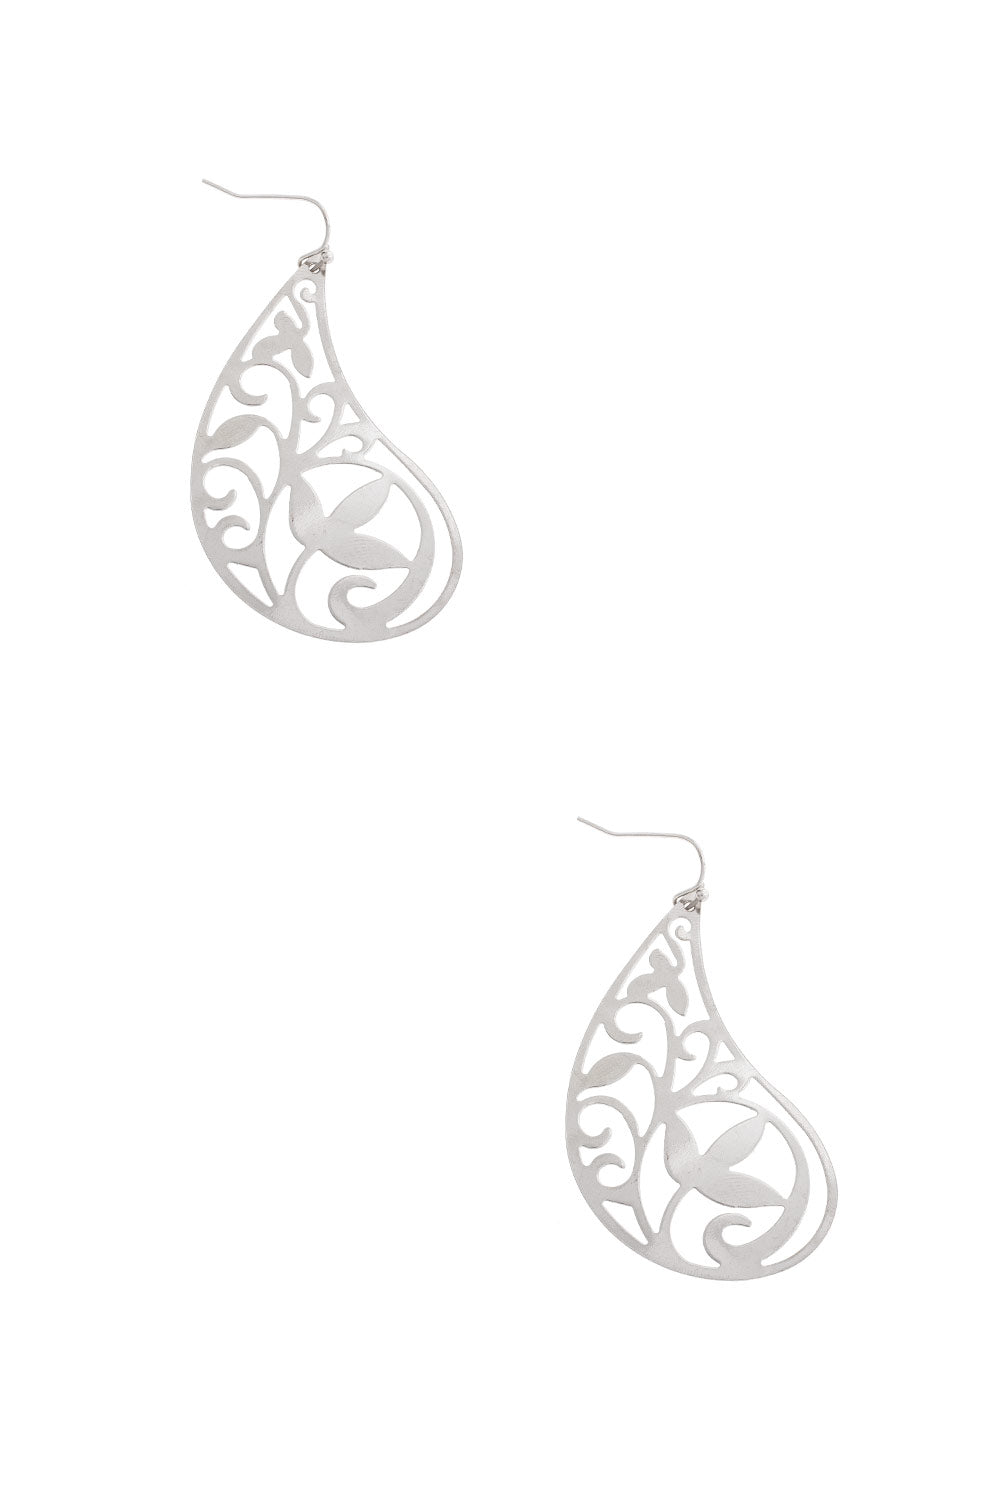 Type 2 Summer Romance Earrings